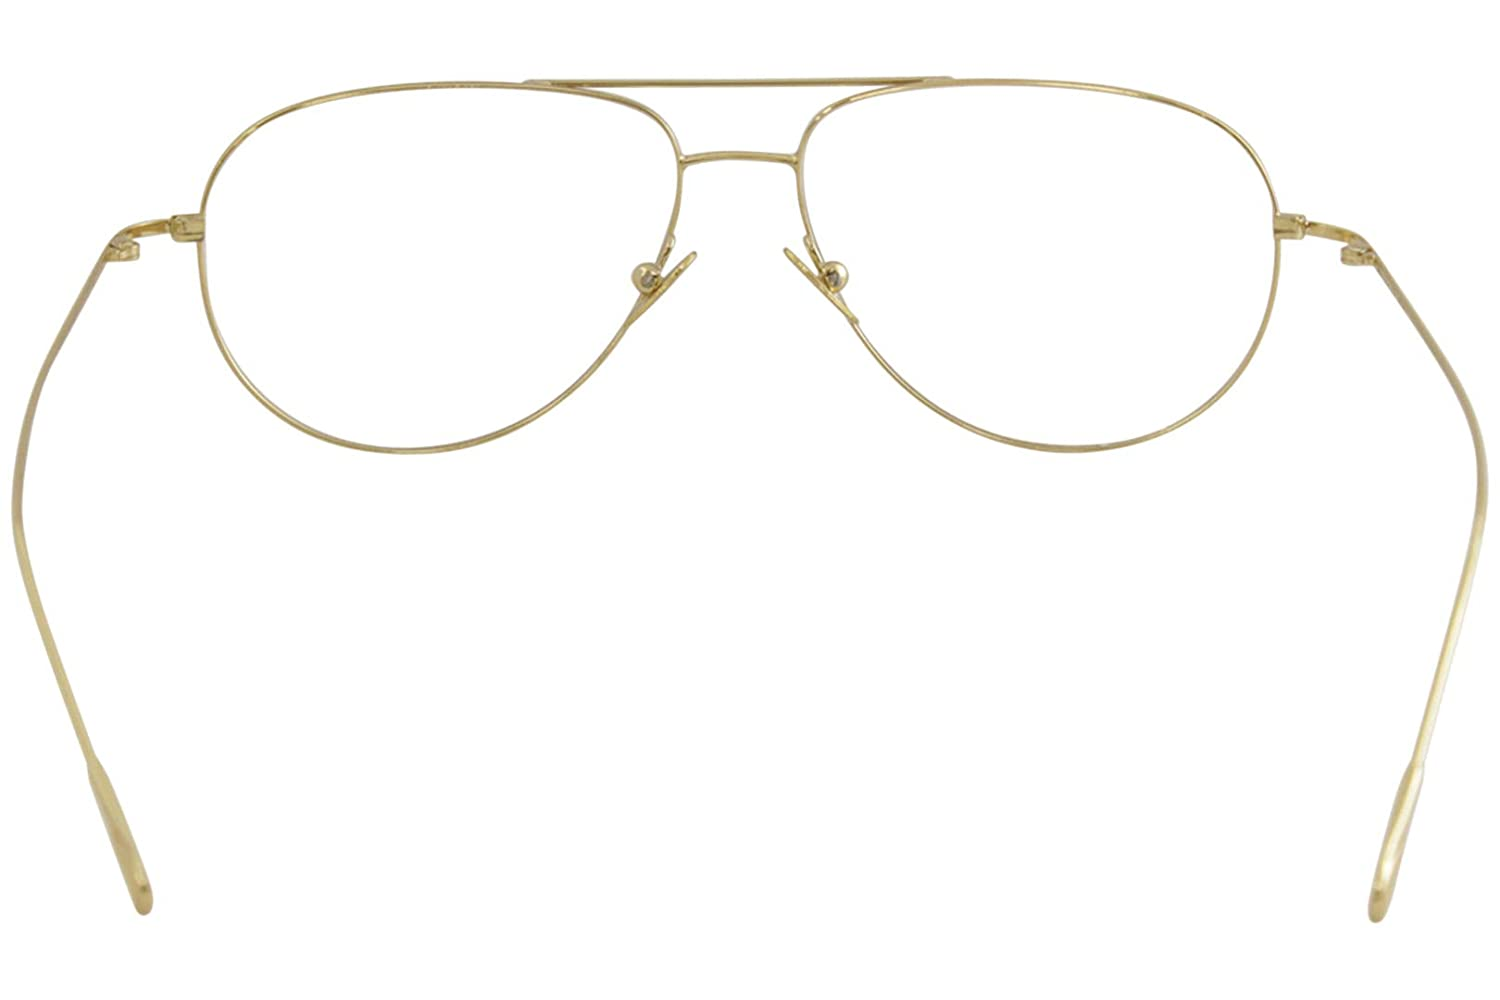 Oligarch Eyeglasses NK1104 NK//1104 Silver Plated Full Rim Optical Frame 56mm